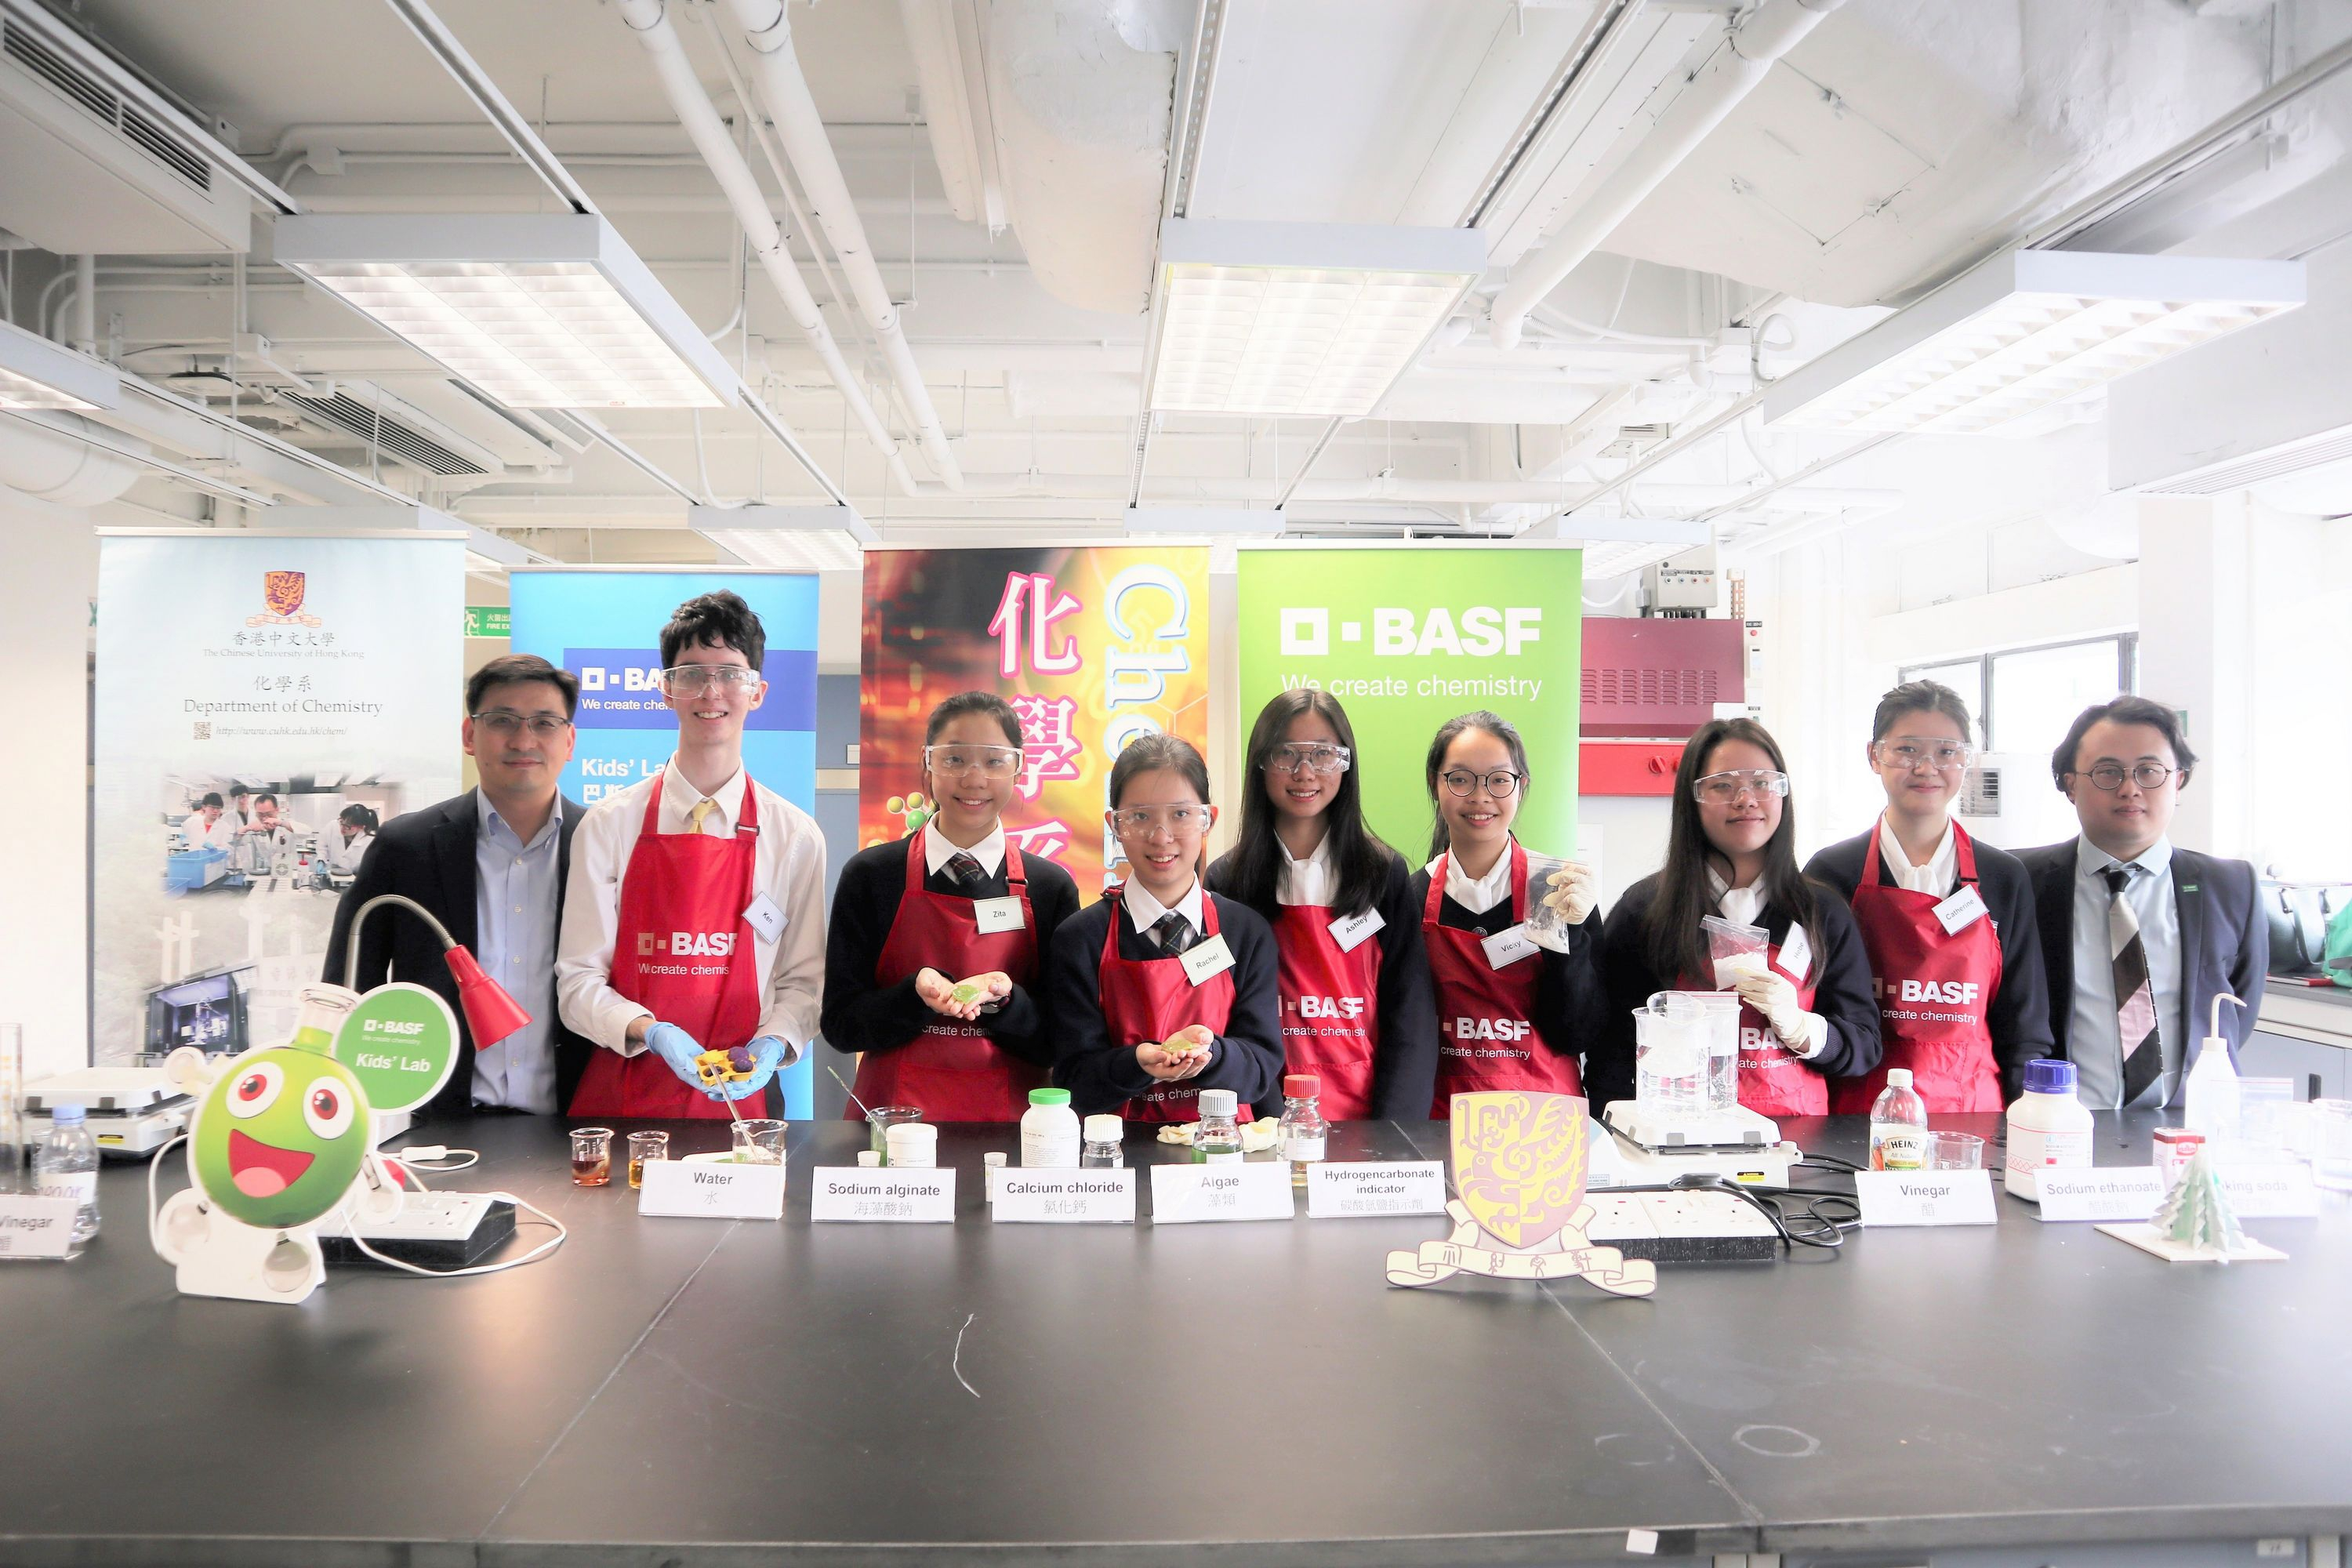 A group photo of the three winning teams along with Prof To Ngai (left), Department of Chemistry, CUHK and Jeremy Tam (right), Manager, Corporate Communications Asia Pacific, BASF.